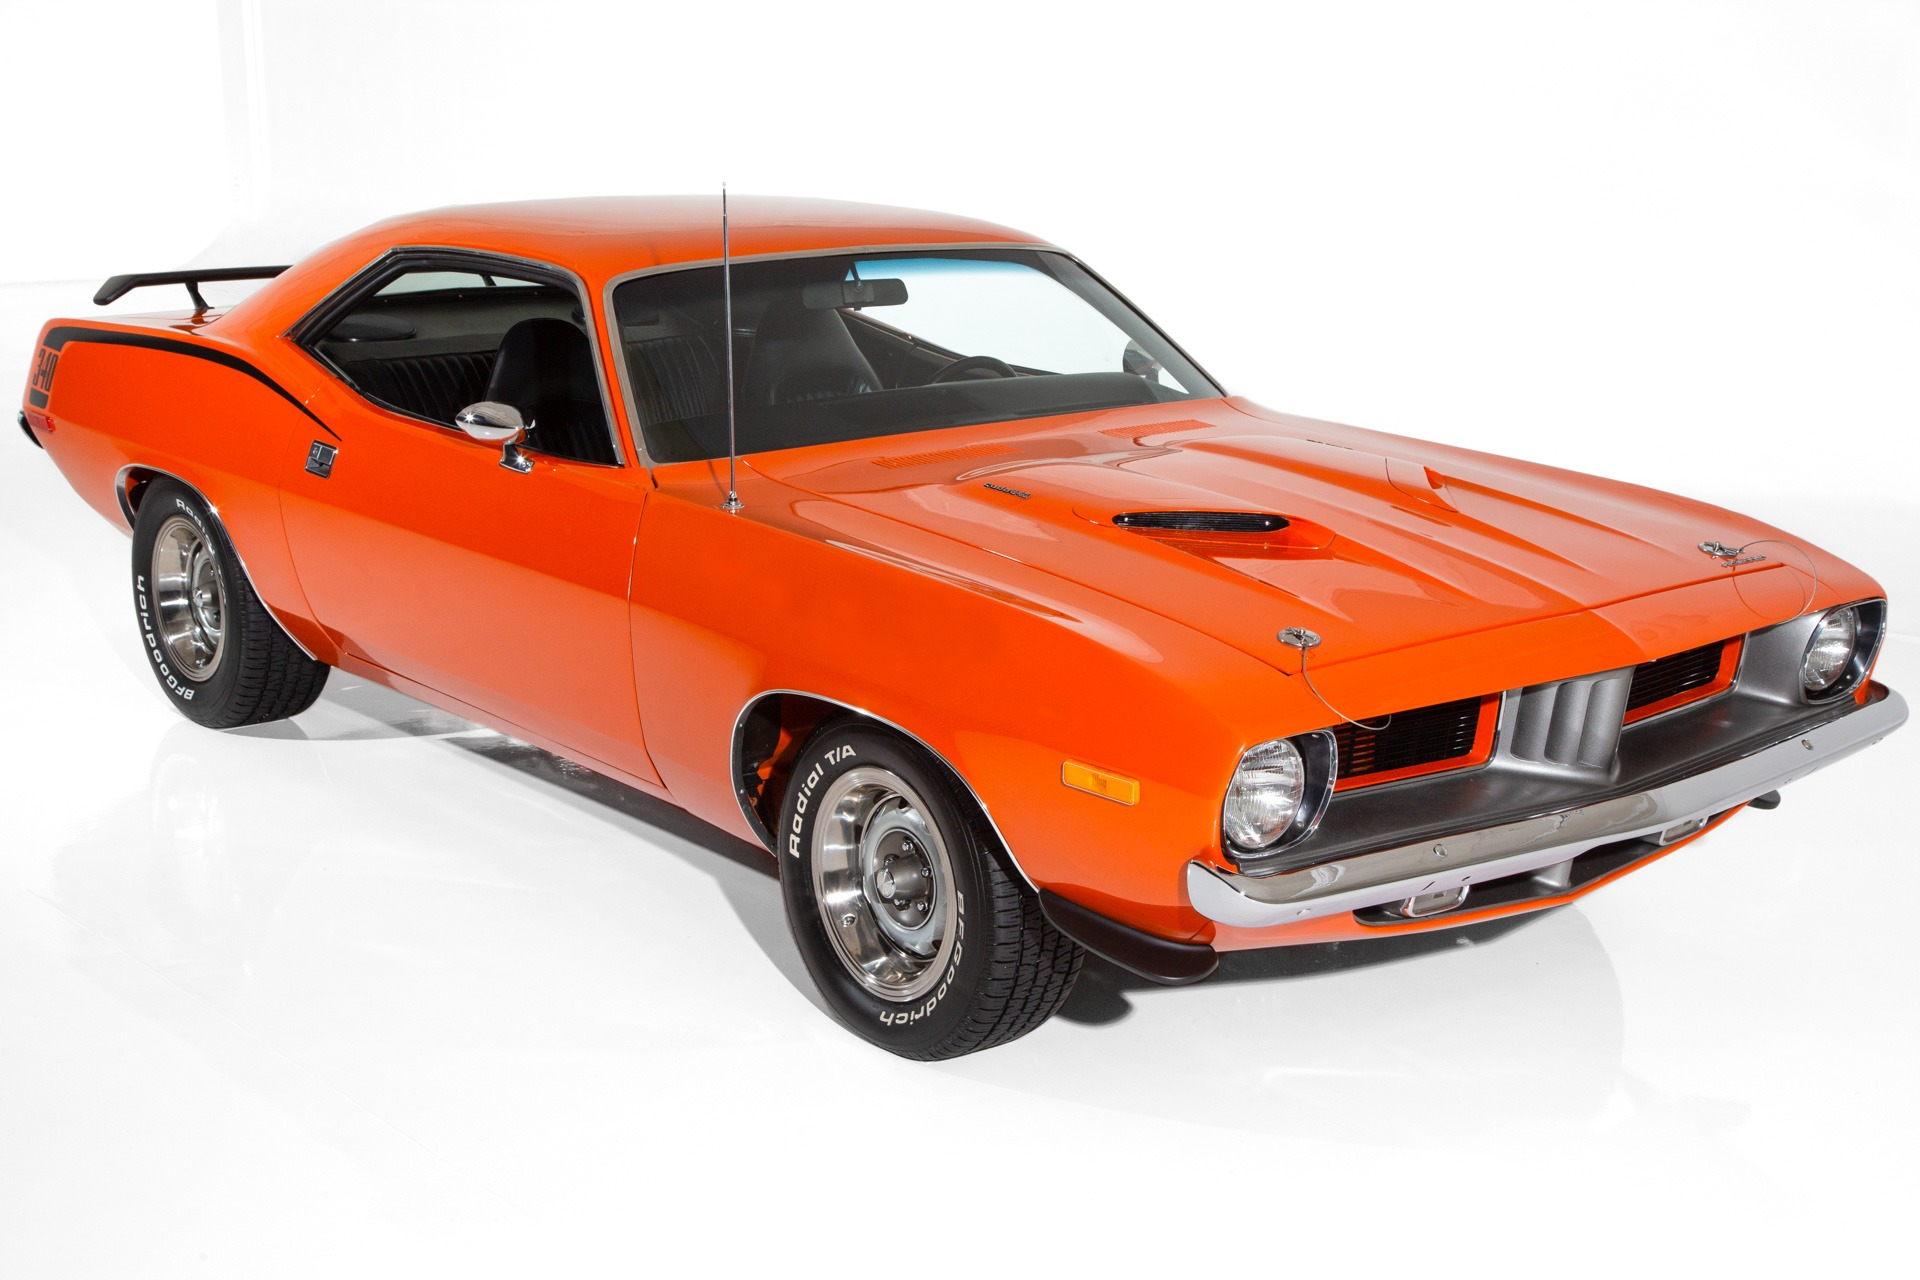 For Sale Used 1973 Plymouth Cuda 340ci 4-Speed BS Code Cuda | American Dream Machines Des Moines IA 50309